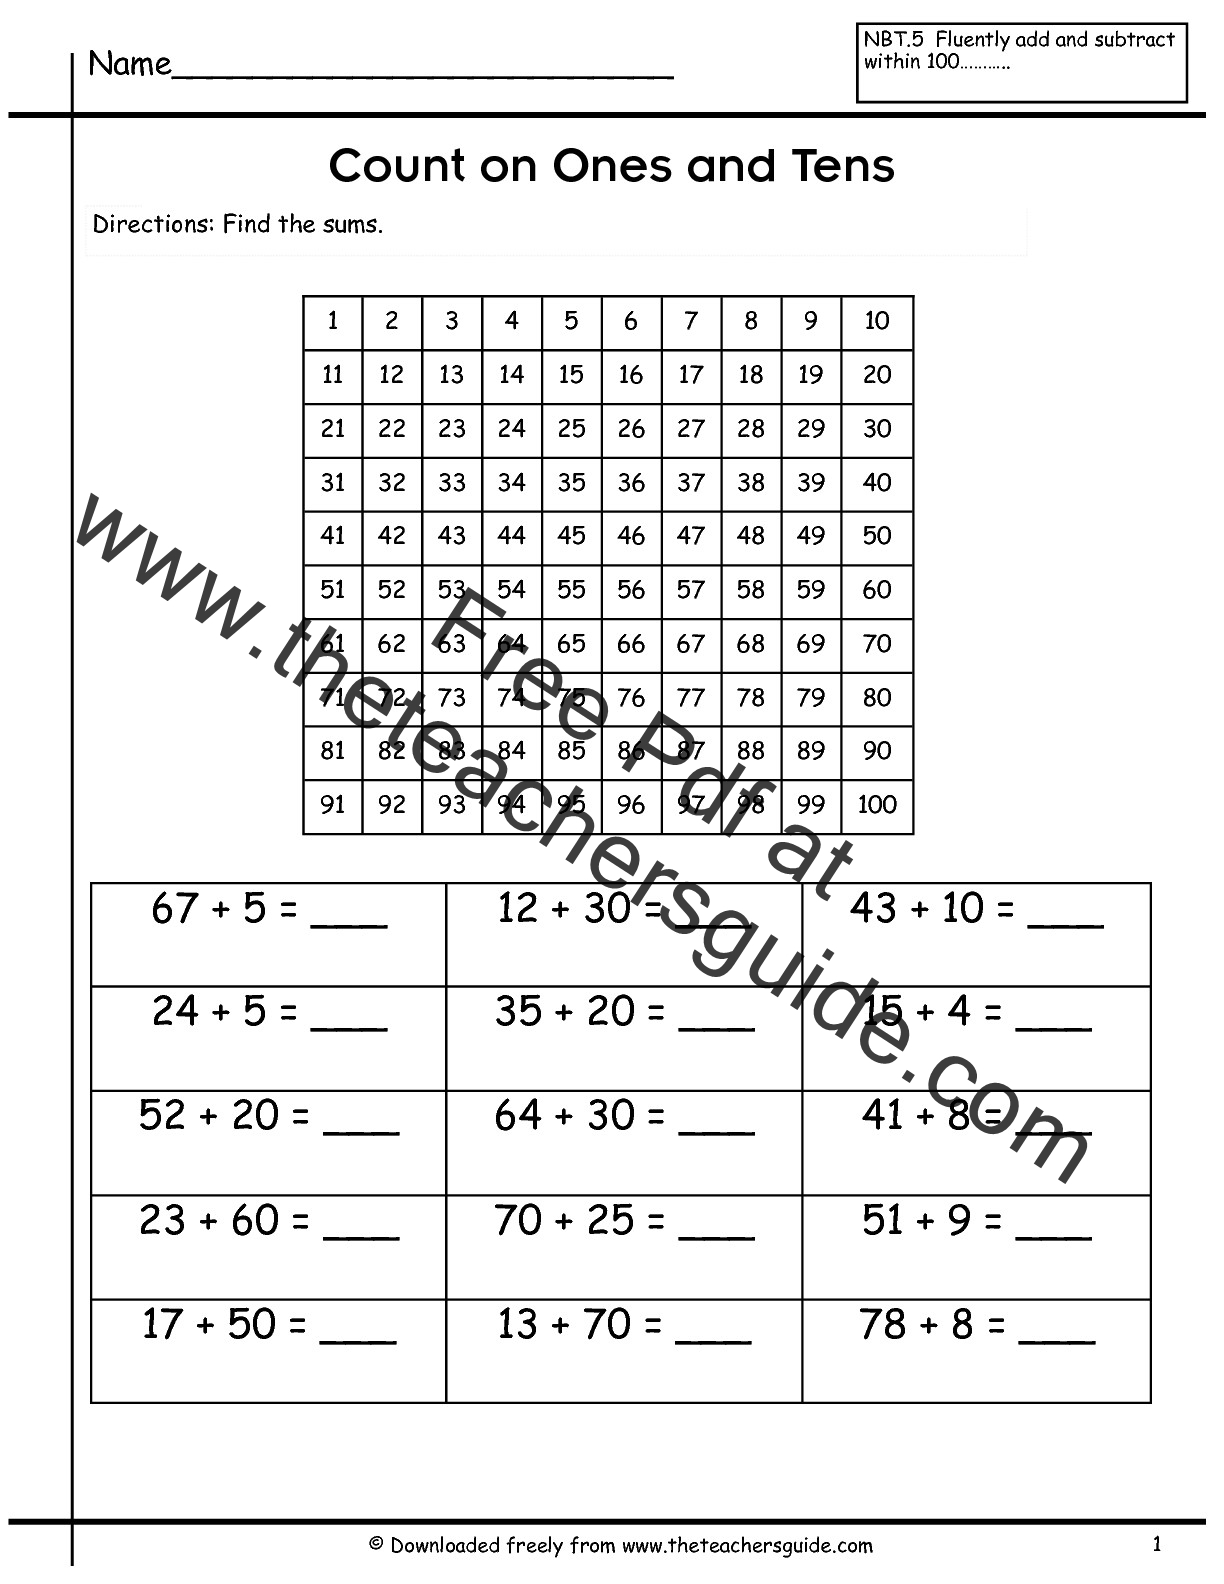 Printables Ones Tens Hundreds Worksheets two digit addition worksheets from the teachers guide counting on ones and tens worksheet